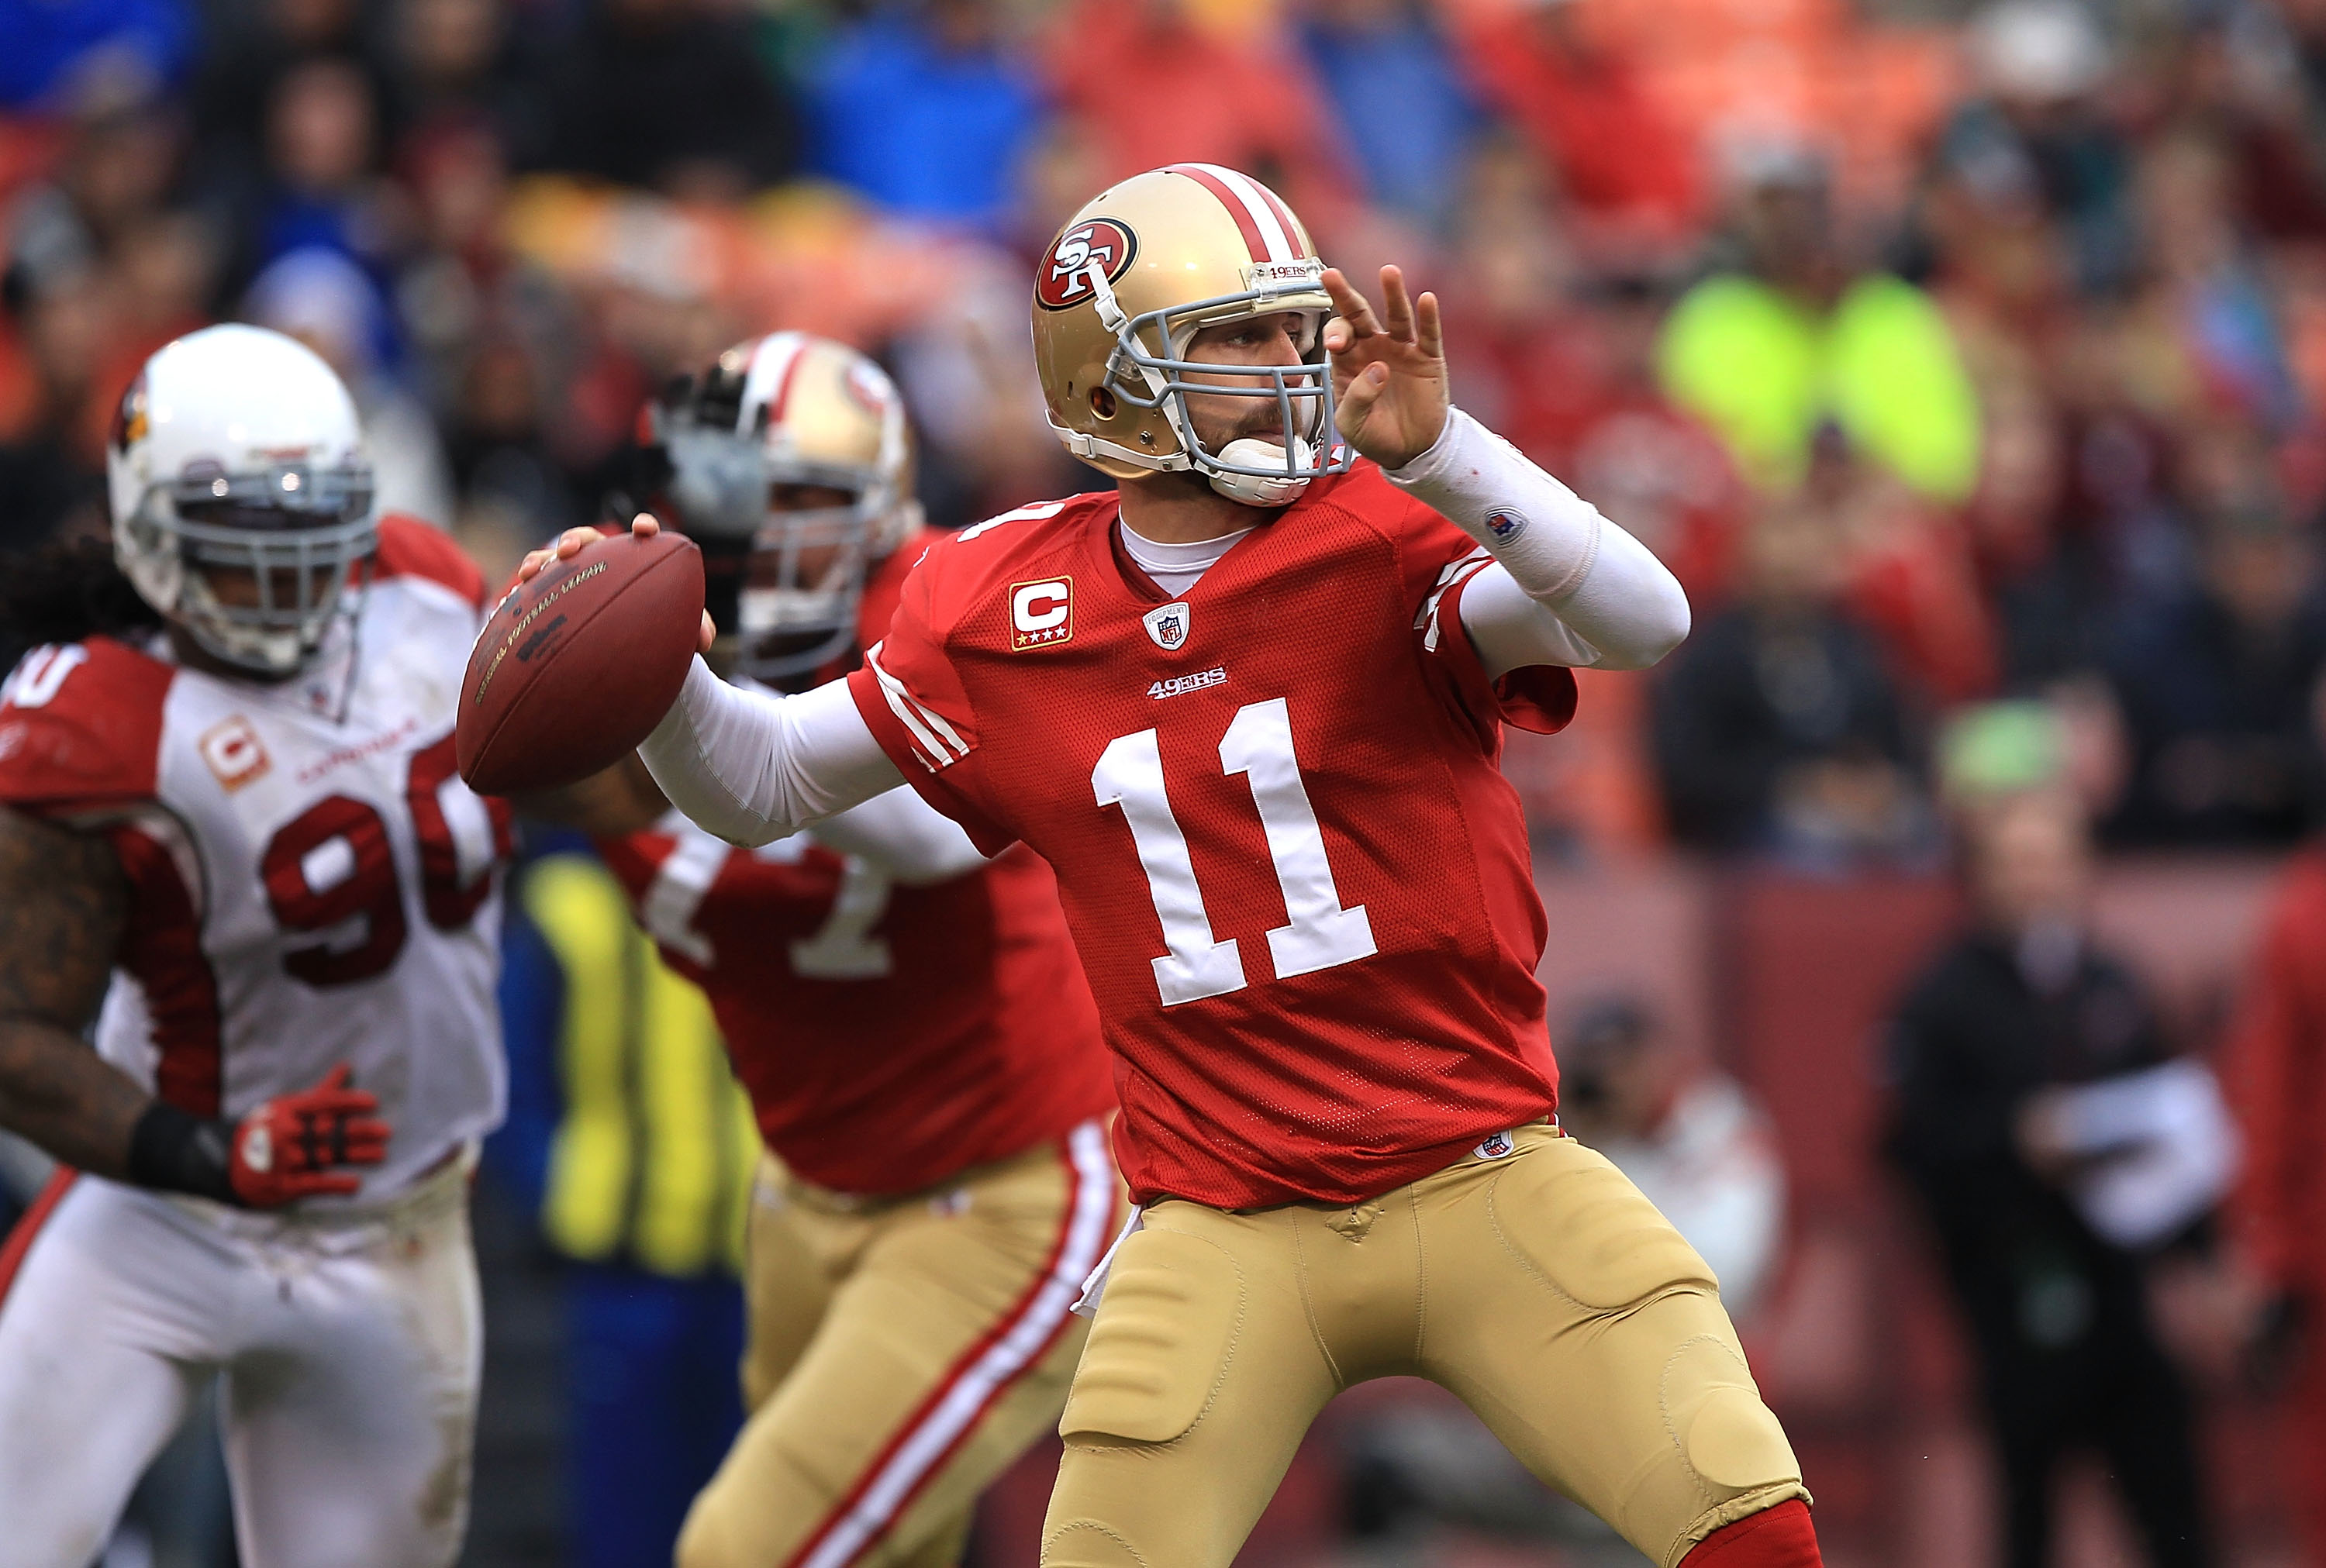 SAN FRANCISCO, CA - JANUARY 2:  Alex Smith #11 of the San Francisco 49ers passes against the Arizona Cardinals during an NFL game at Candlestick Park on January 2, 2011 in San Francisco, California.(Photo by Jed Jacobsohn/Getty Images)